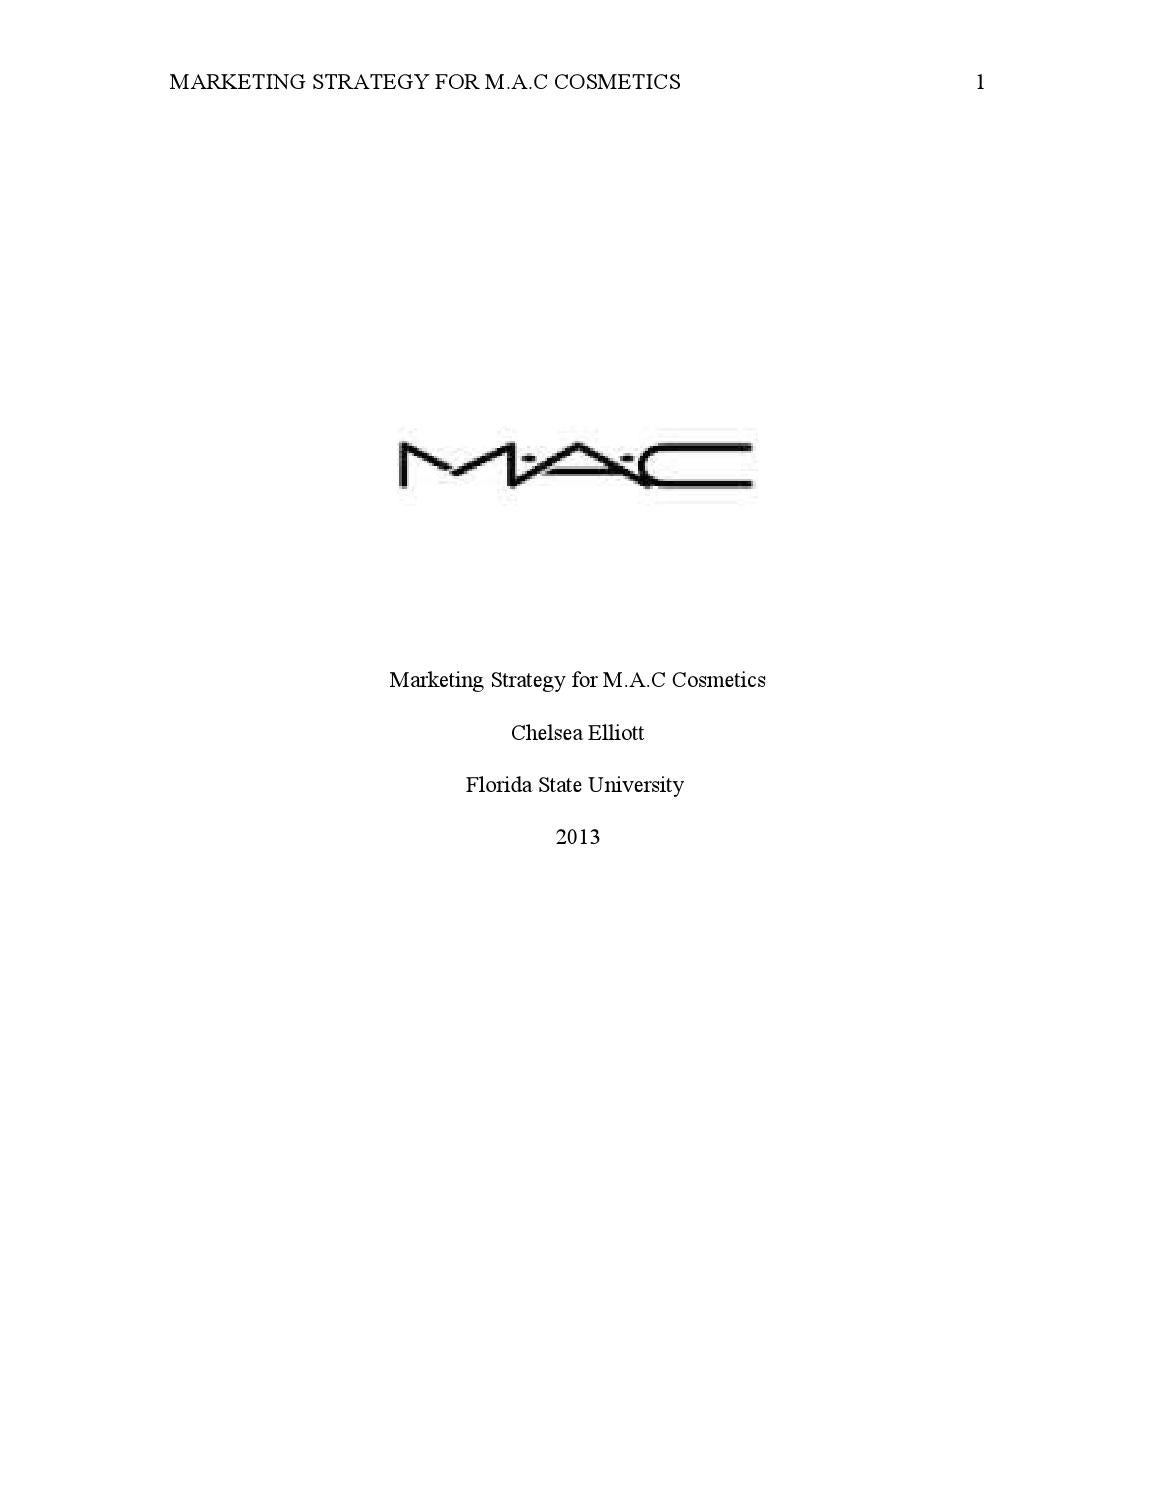 631d12961a Marketing Strategy for MAC by chelselliott - issuu